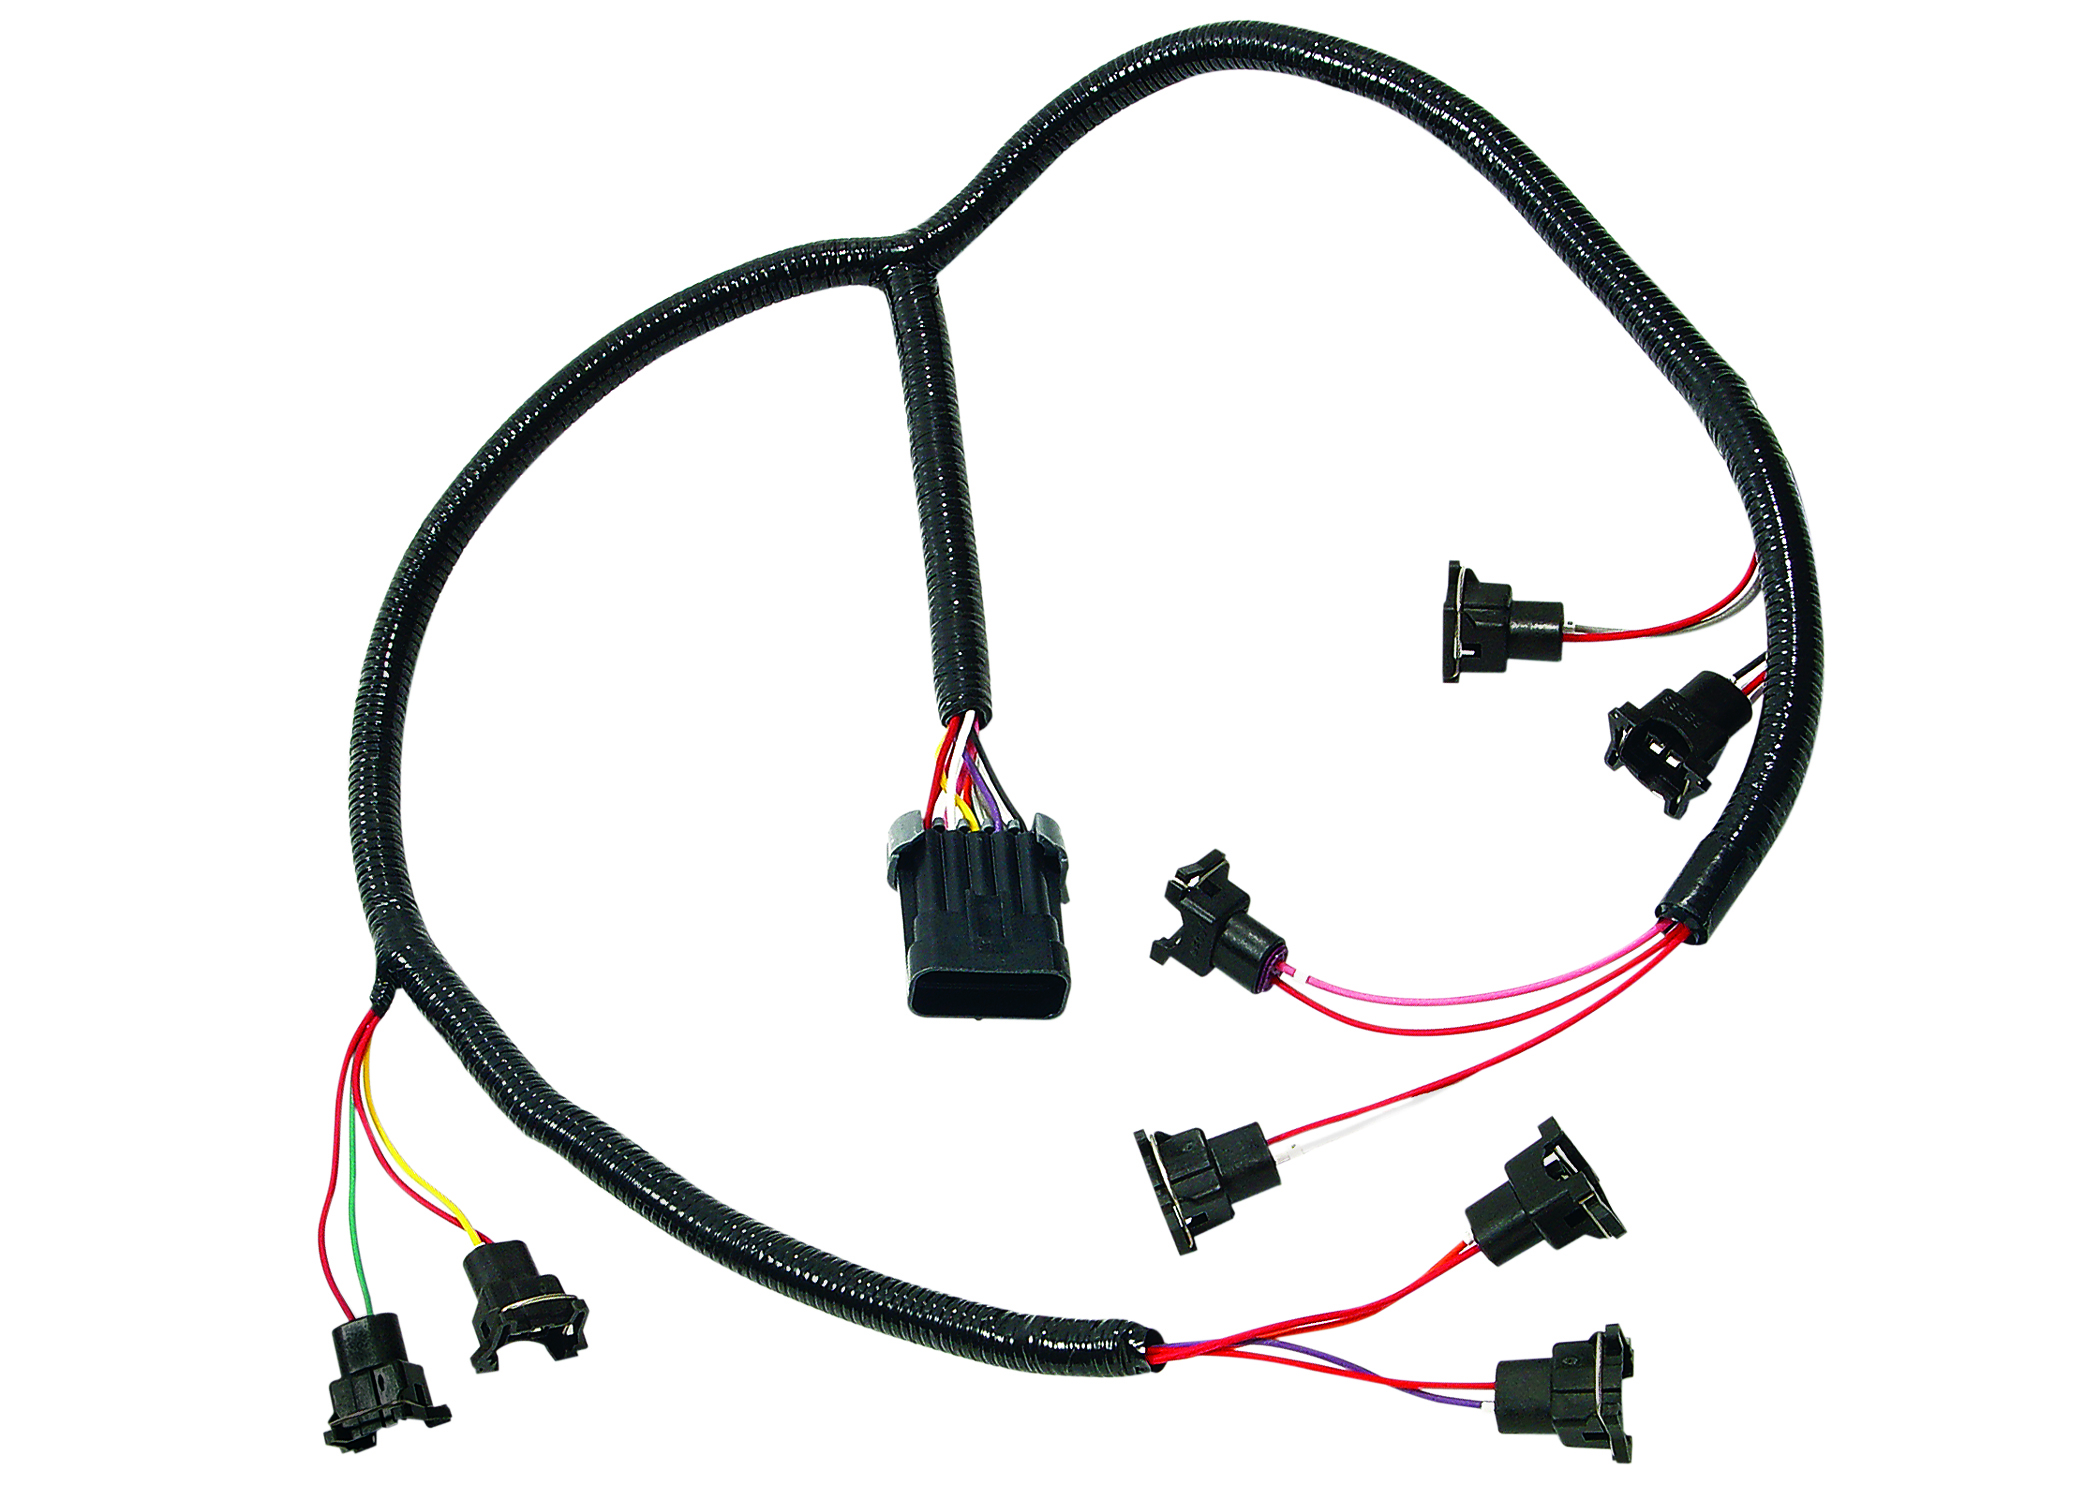 Accel Gen Vii Injector Harness